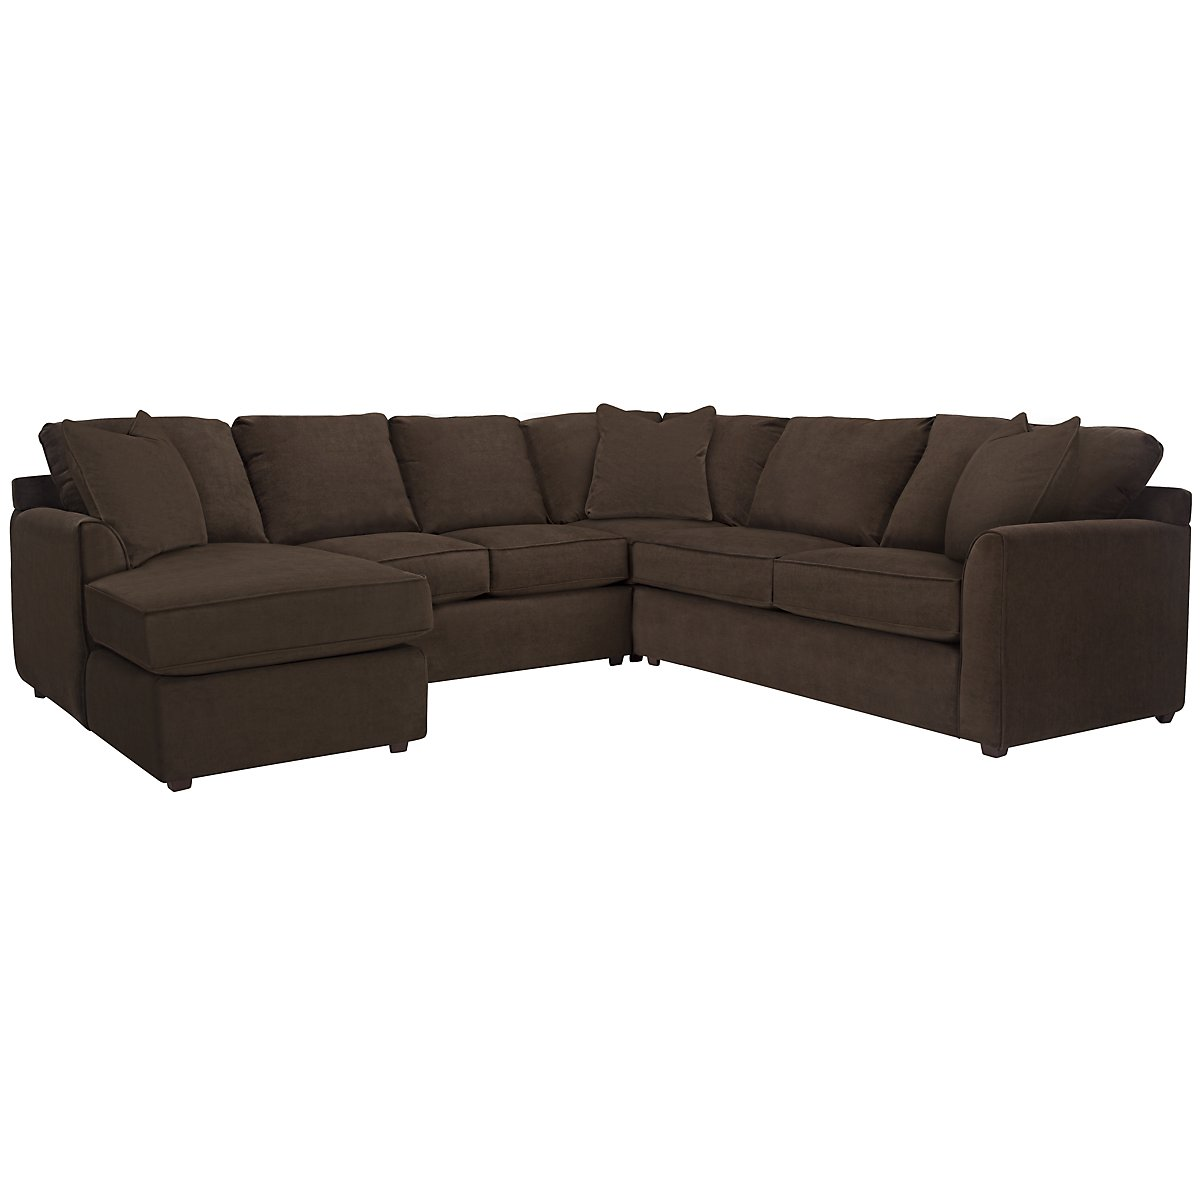 Express3 Dark Brown Microfiber Small Left Chaise Sectional